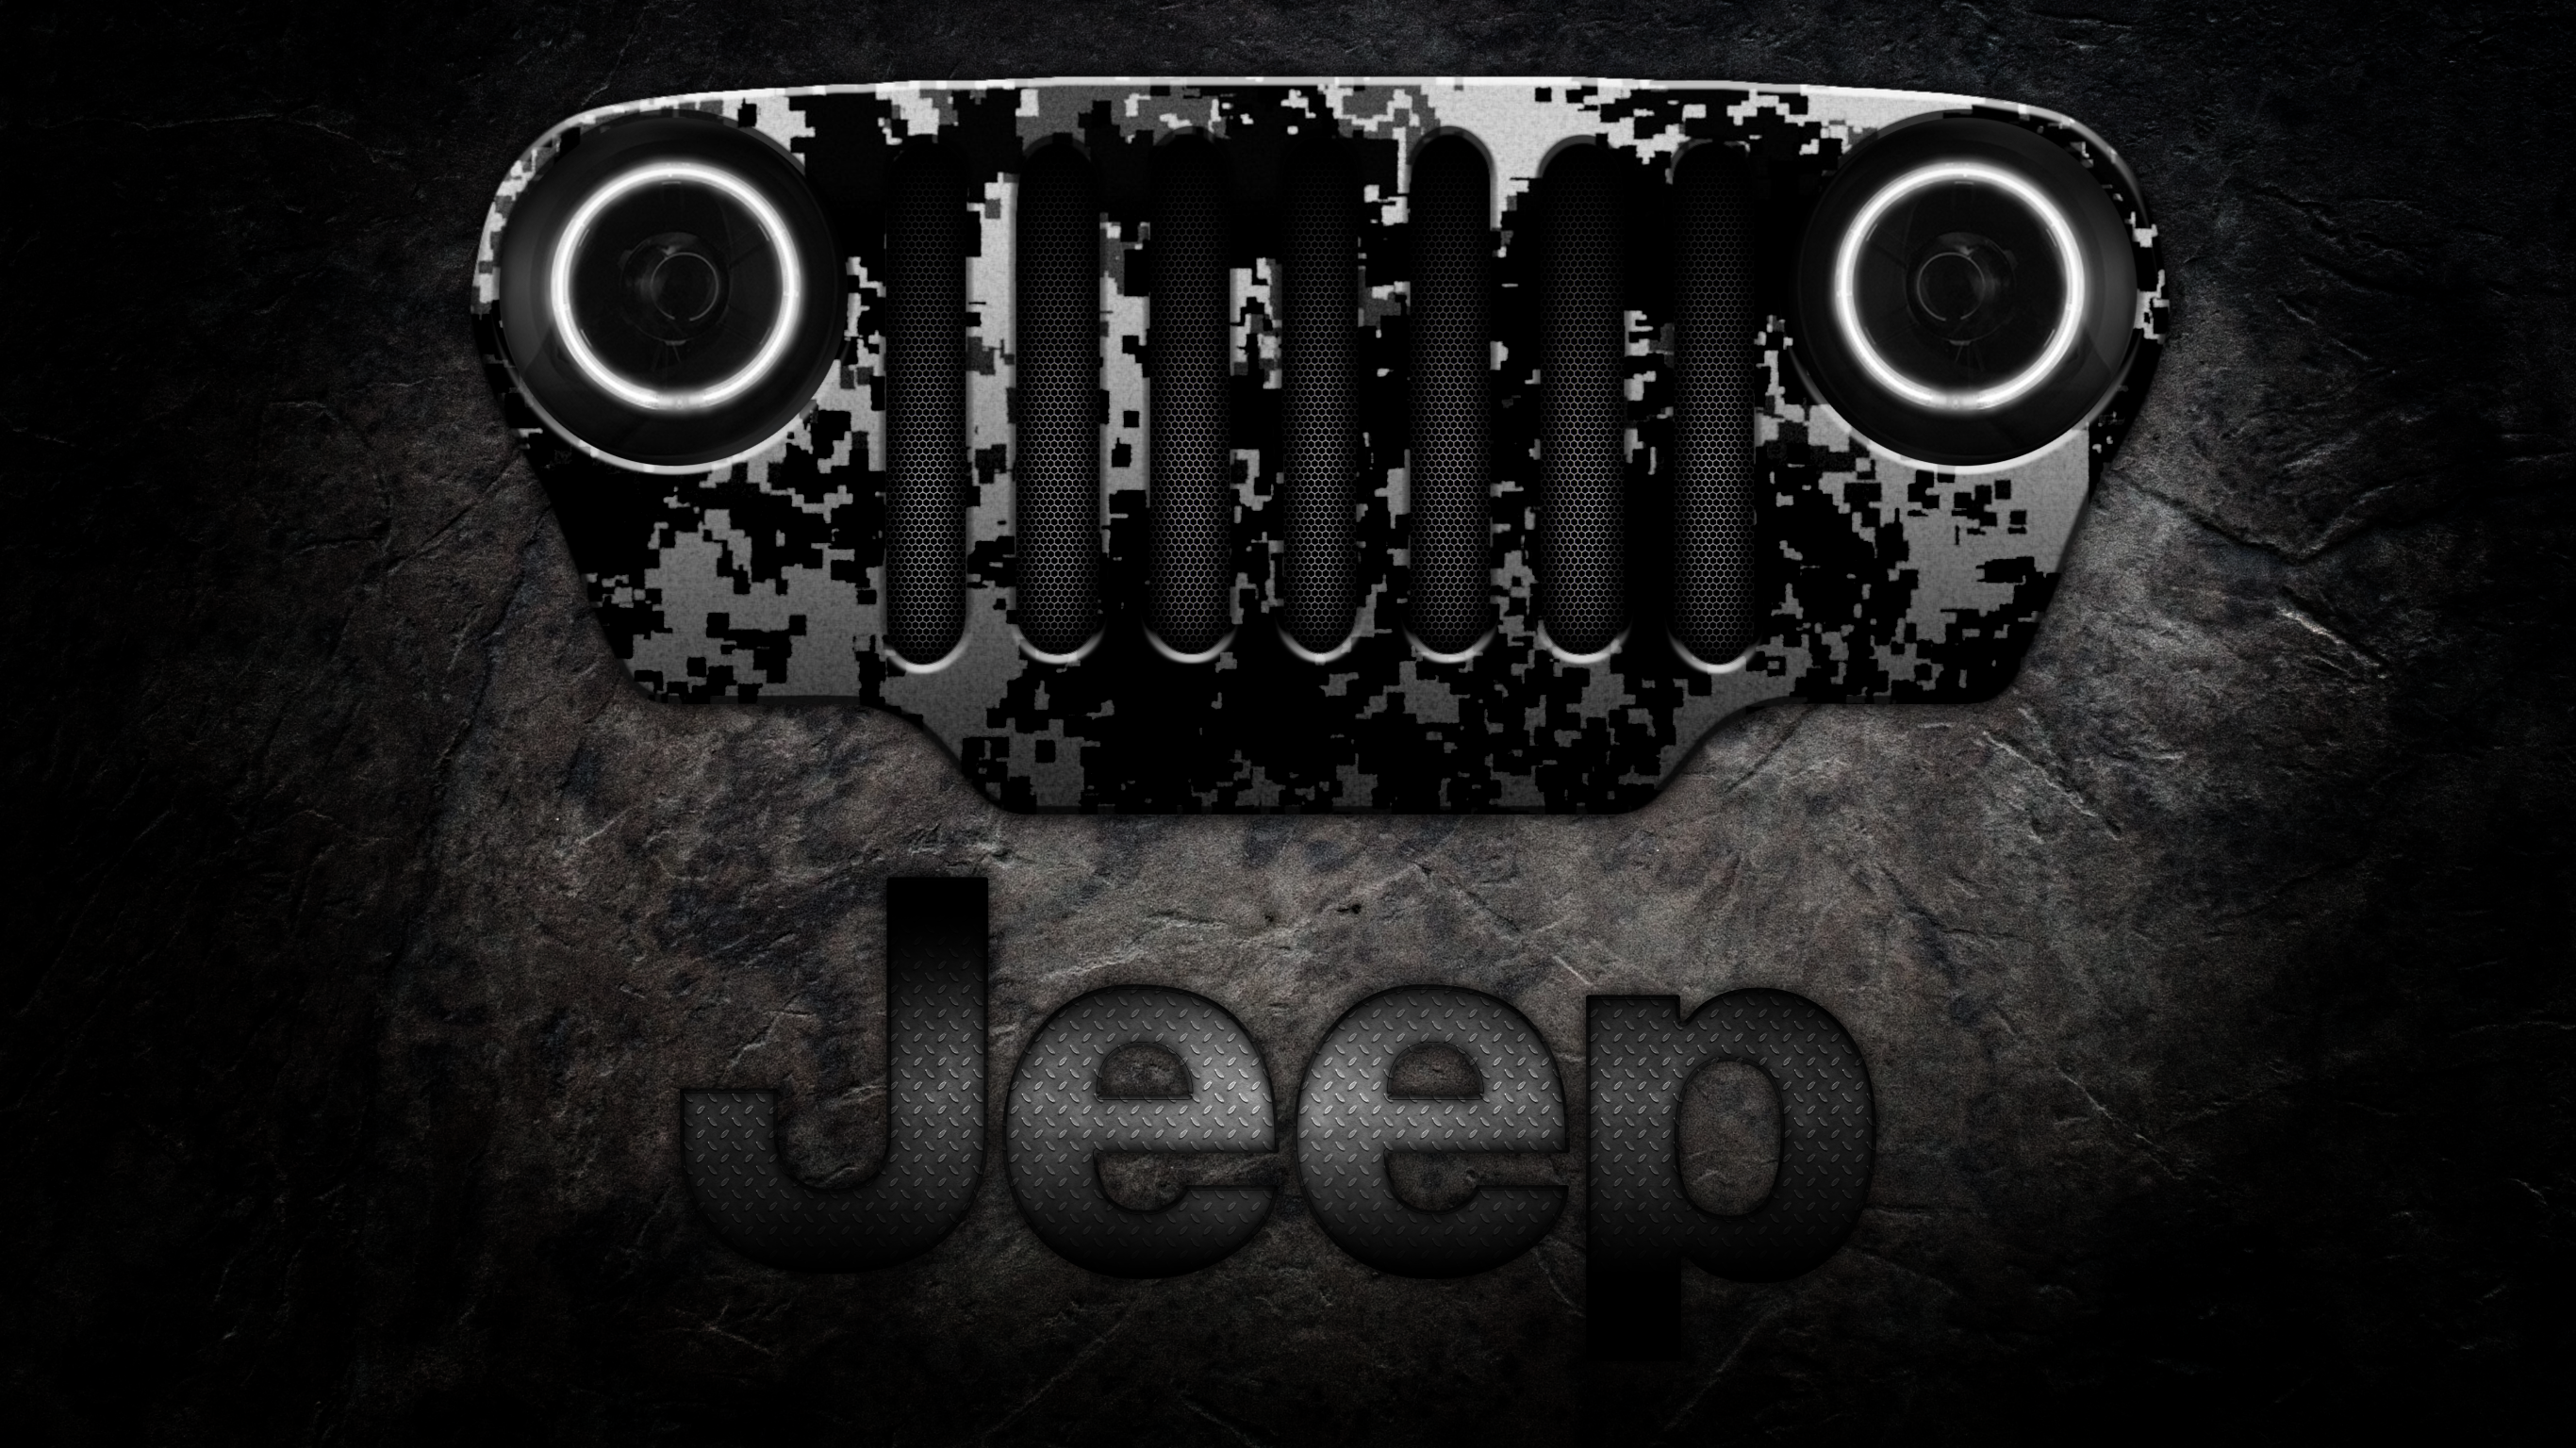 Jeep Iphone 5 Wallpaper and up for grabs   jeep 2732x1536